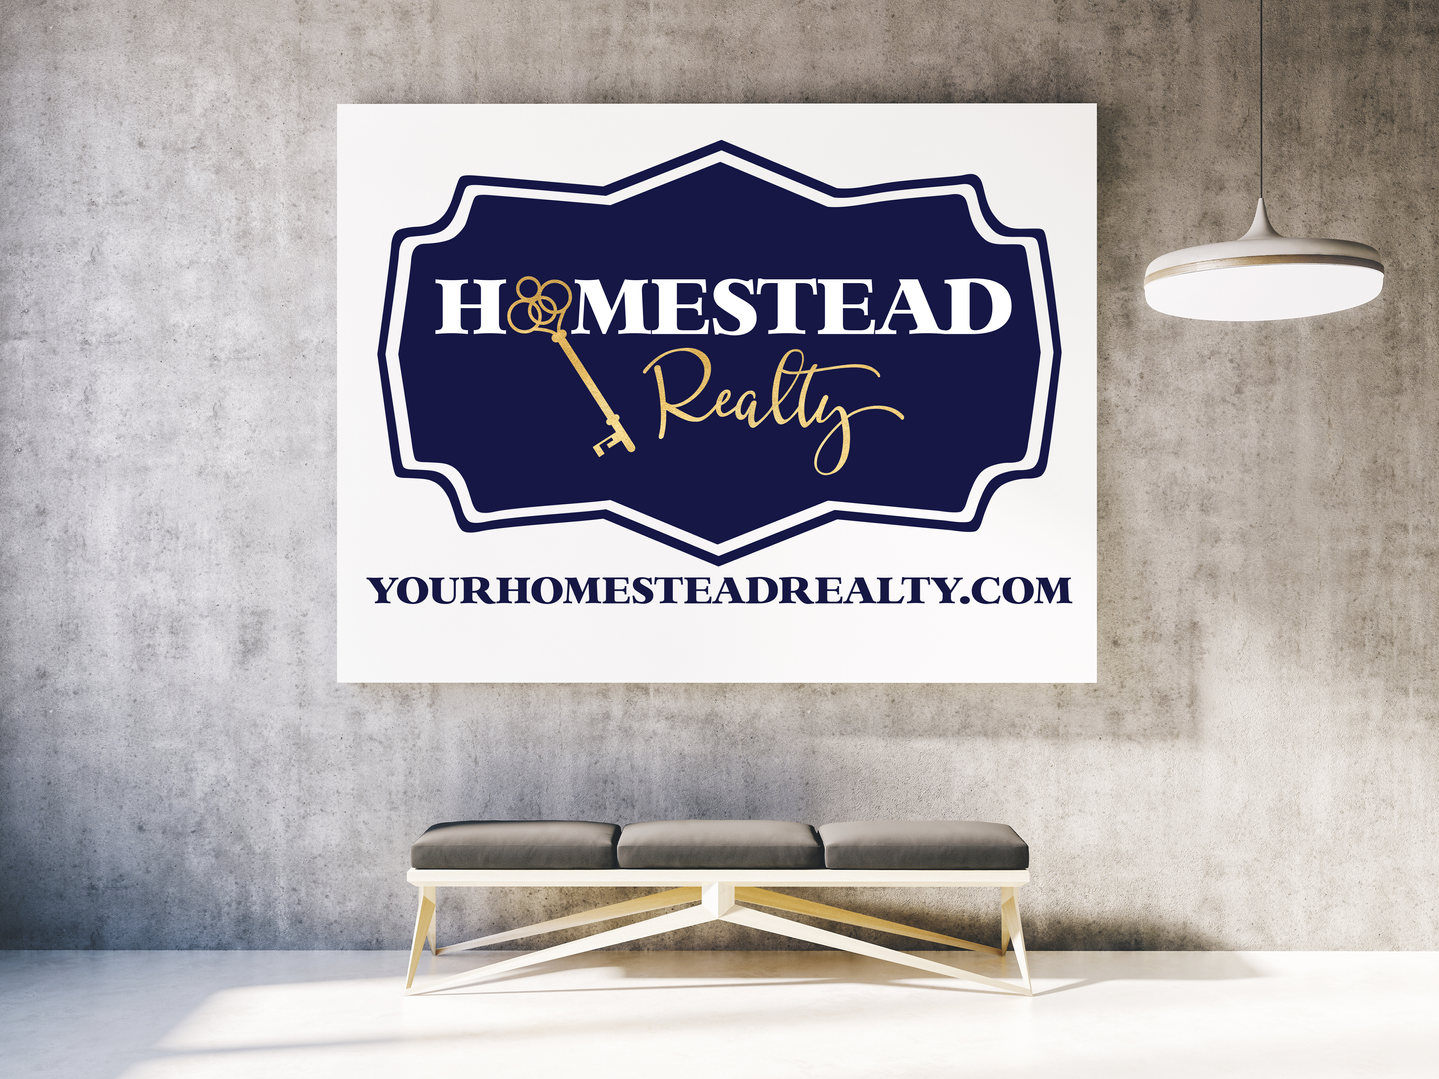 homesteadraltyofficesign.jpg